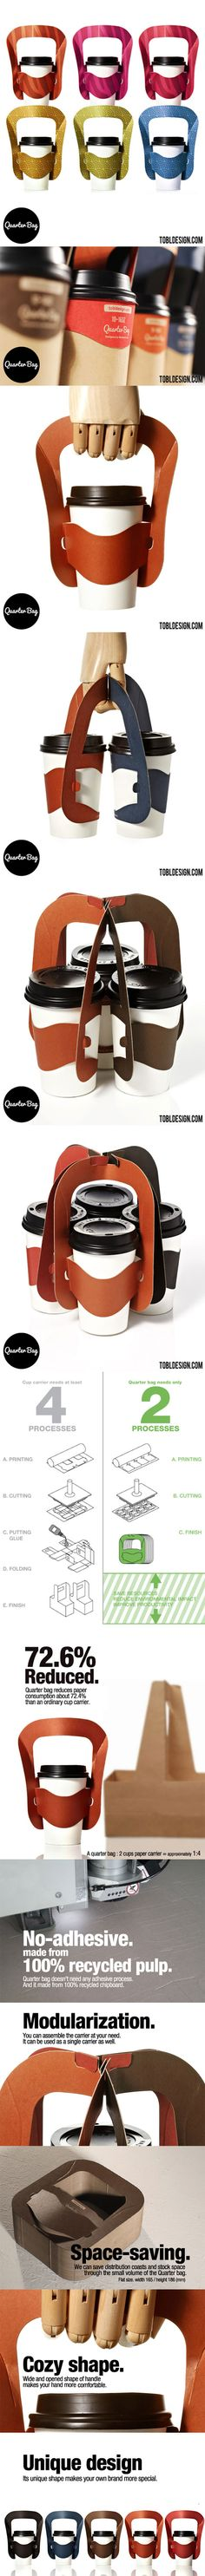 Quarter Bag  --Packaging of the World--    Fantastically designed new coffee cup holder concept. Now carrying 3 coffee cups at once won't suck and feel really unsteady in the holder. Looks gorgeous as well.